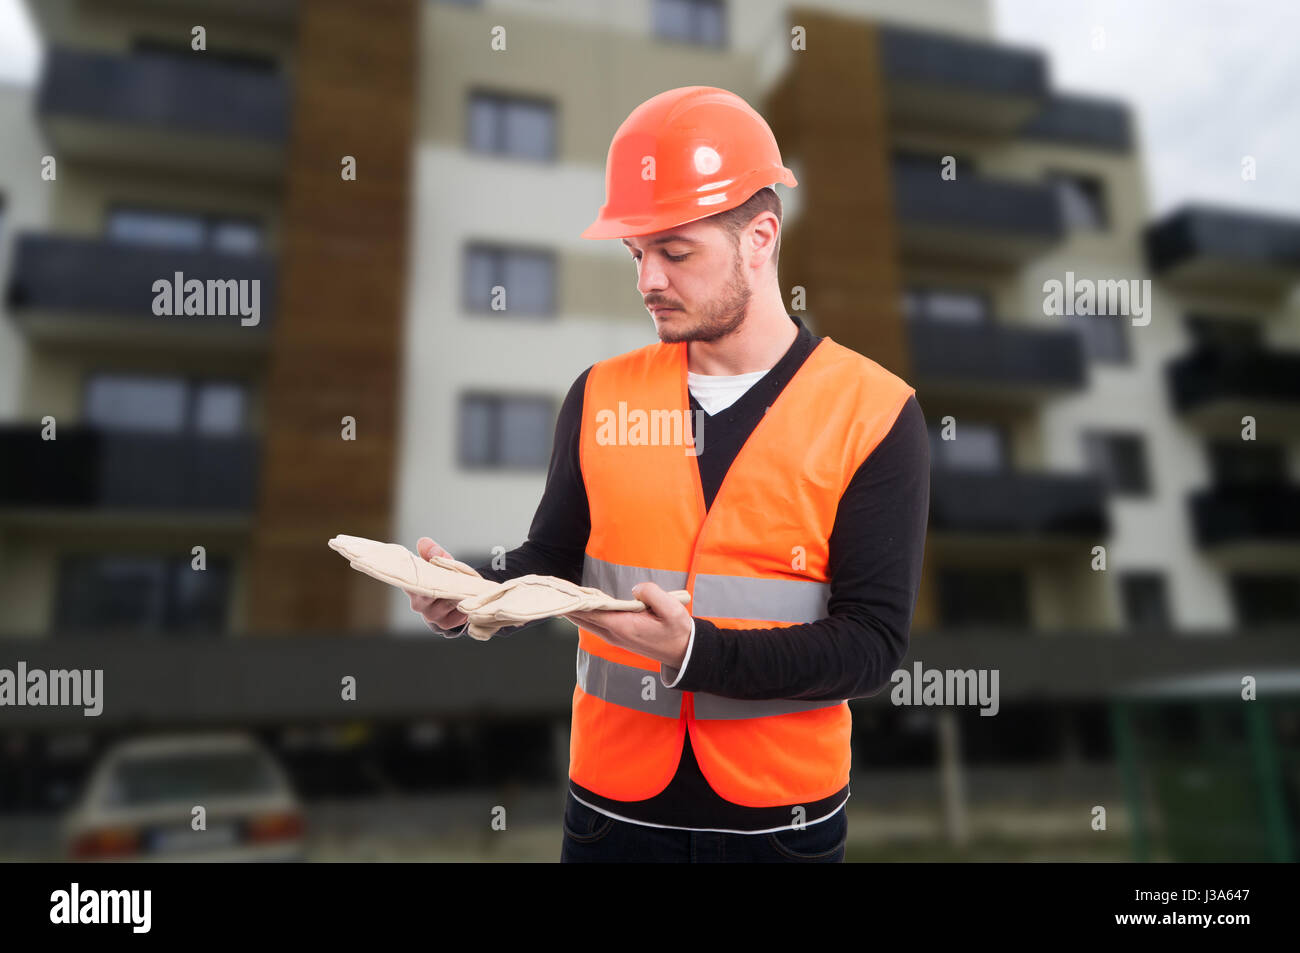 Male constructor outdoor at working place holding his protection gloves - Stock Image